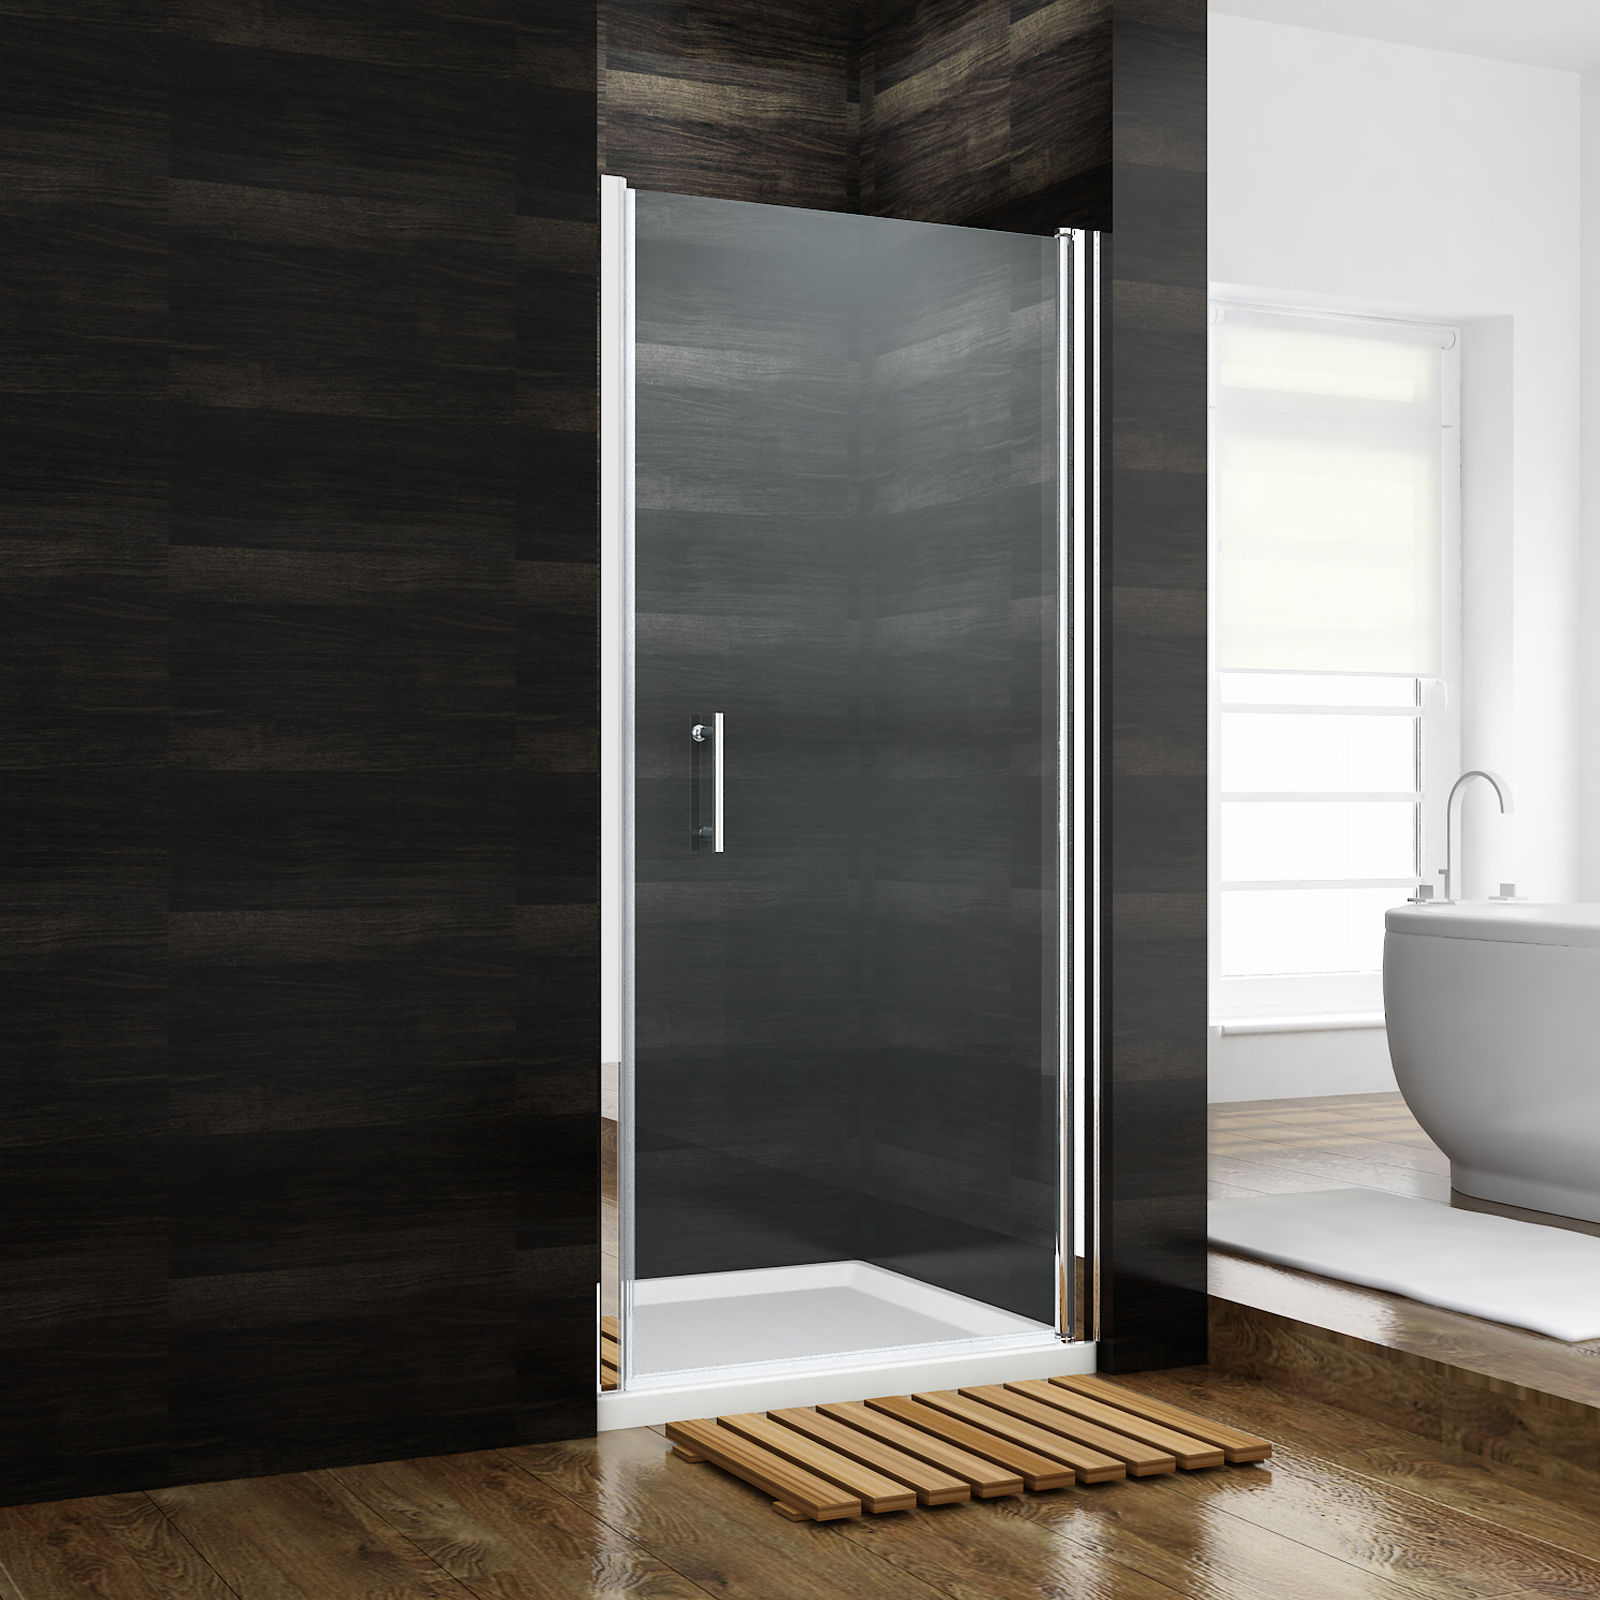 Details About Sunny Shower 31 1 4x72 In Semi Frameless Glass Pivot Shower Door Chrome Finish